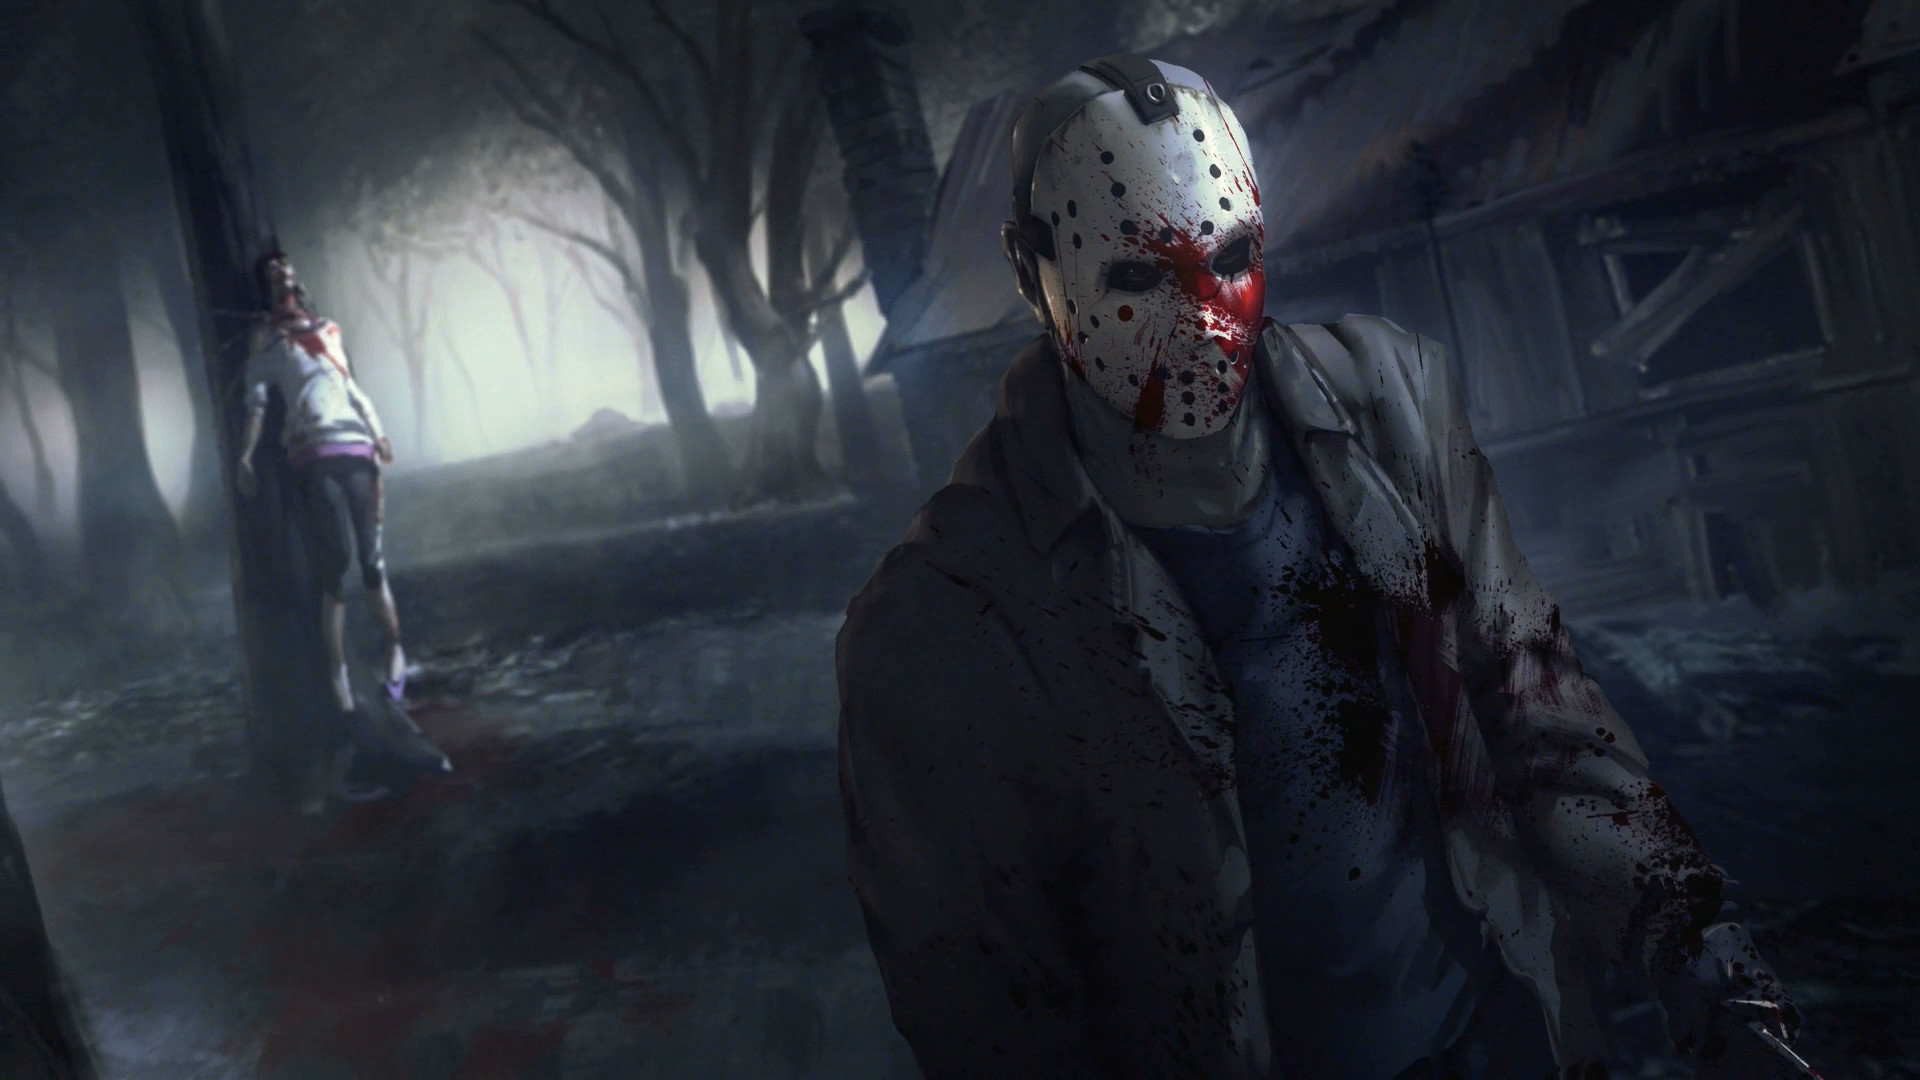 Res: 1920x1080, Computerspiele - Friday the 13th: The Game Wallpaper